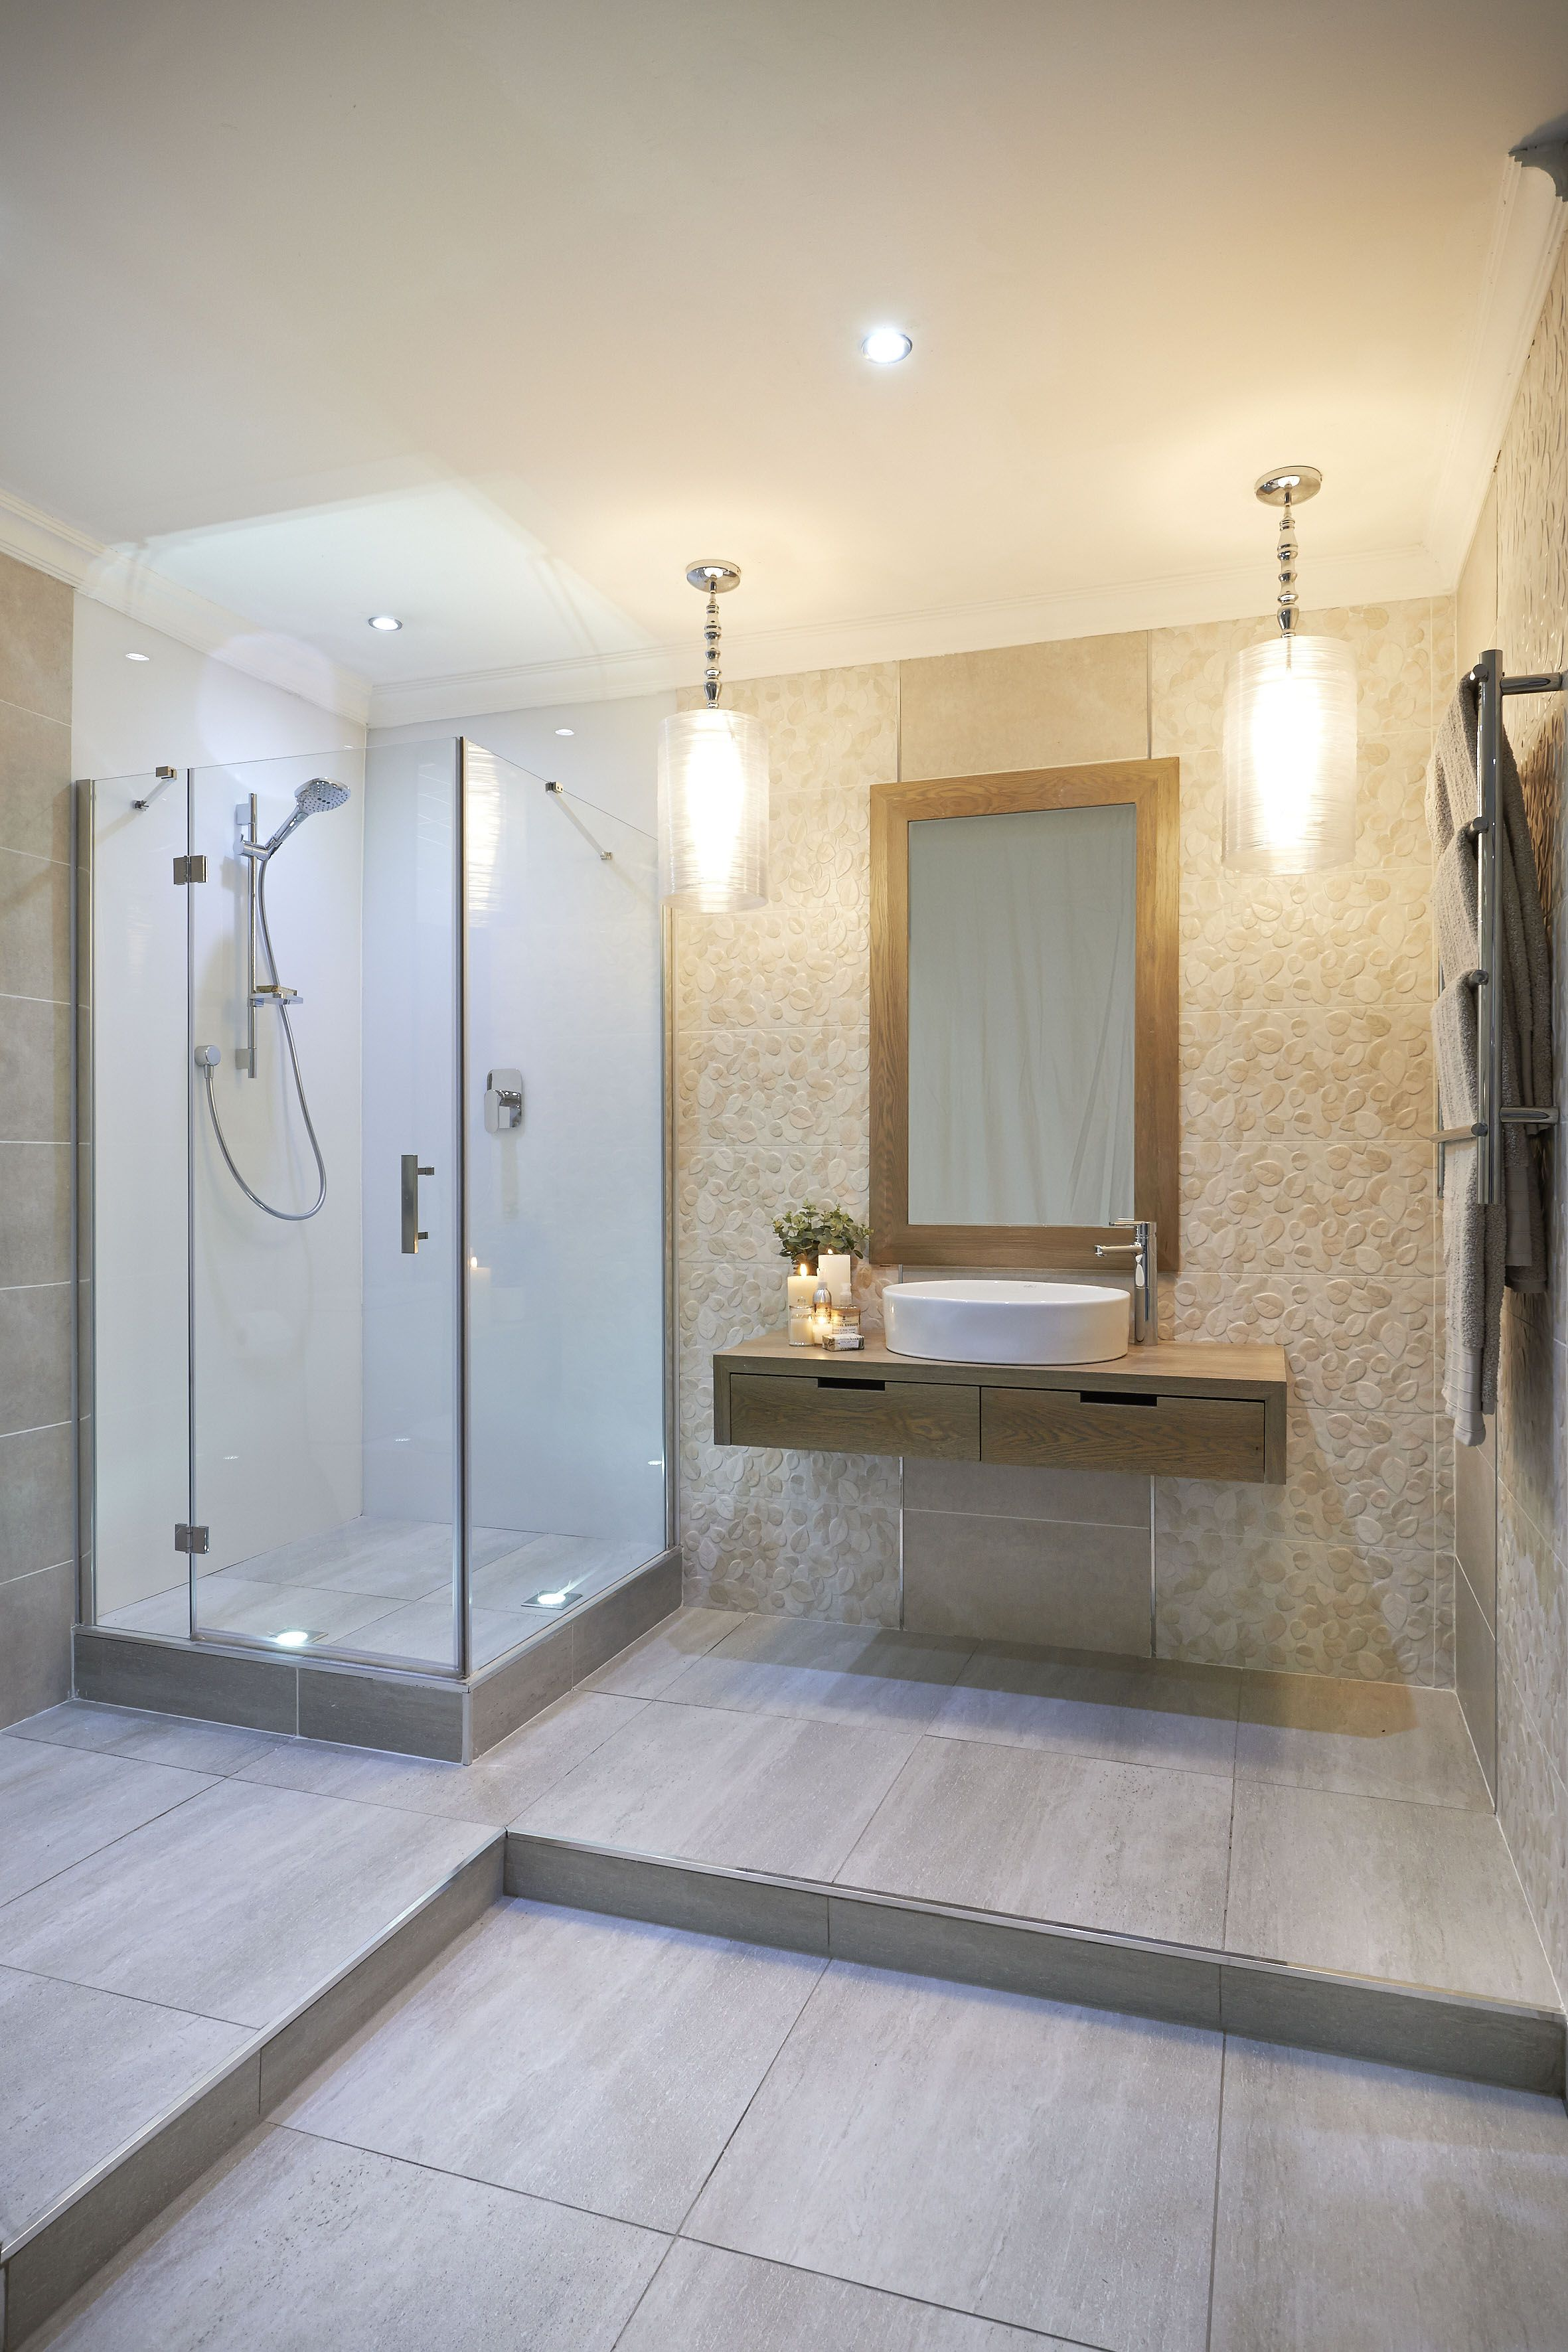 Acrylic wall panels for bathroom - Lustrolite Is An Award Winning High Gloss Acrylic Wall Panel It S The Perfect Material To